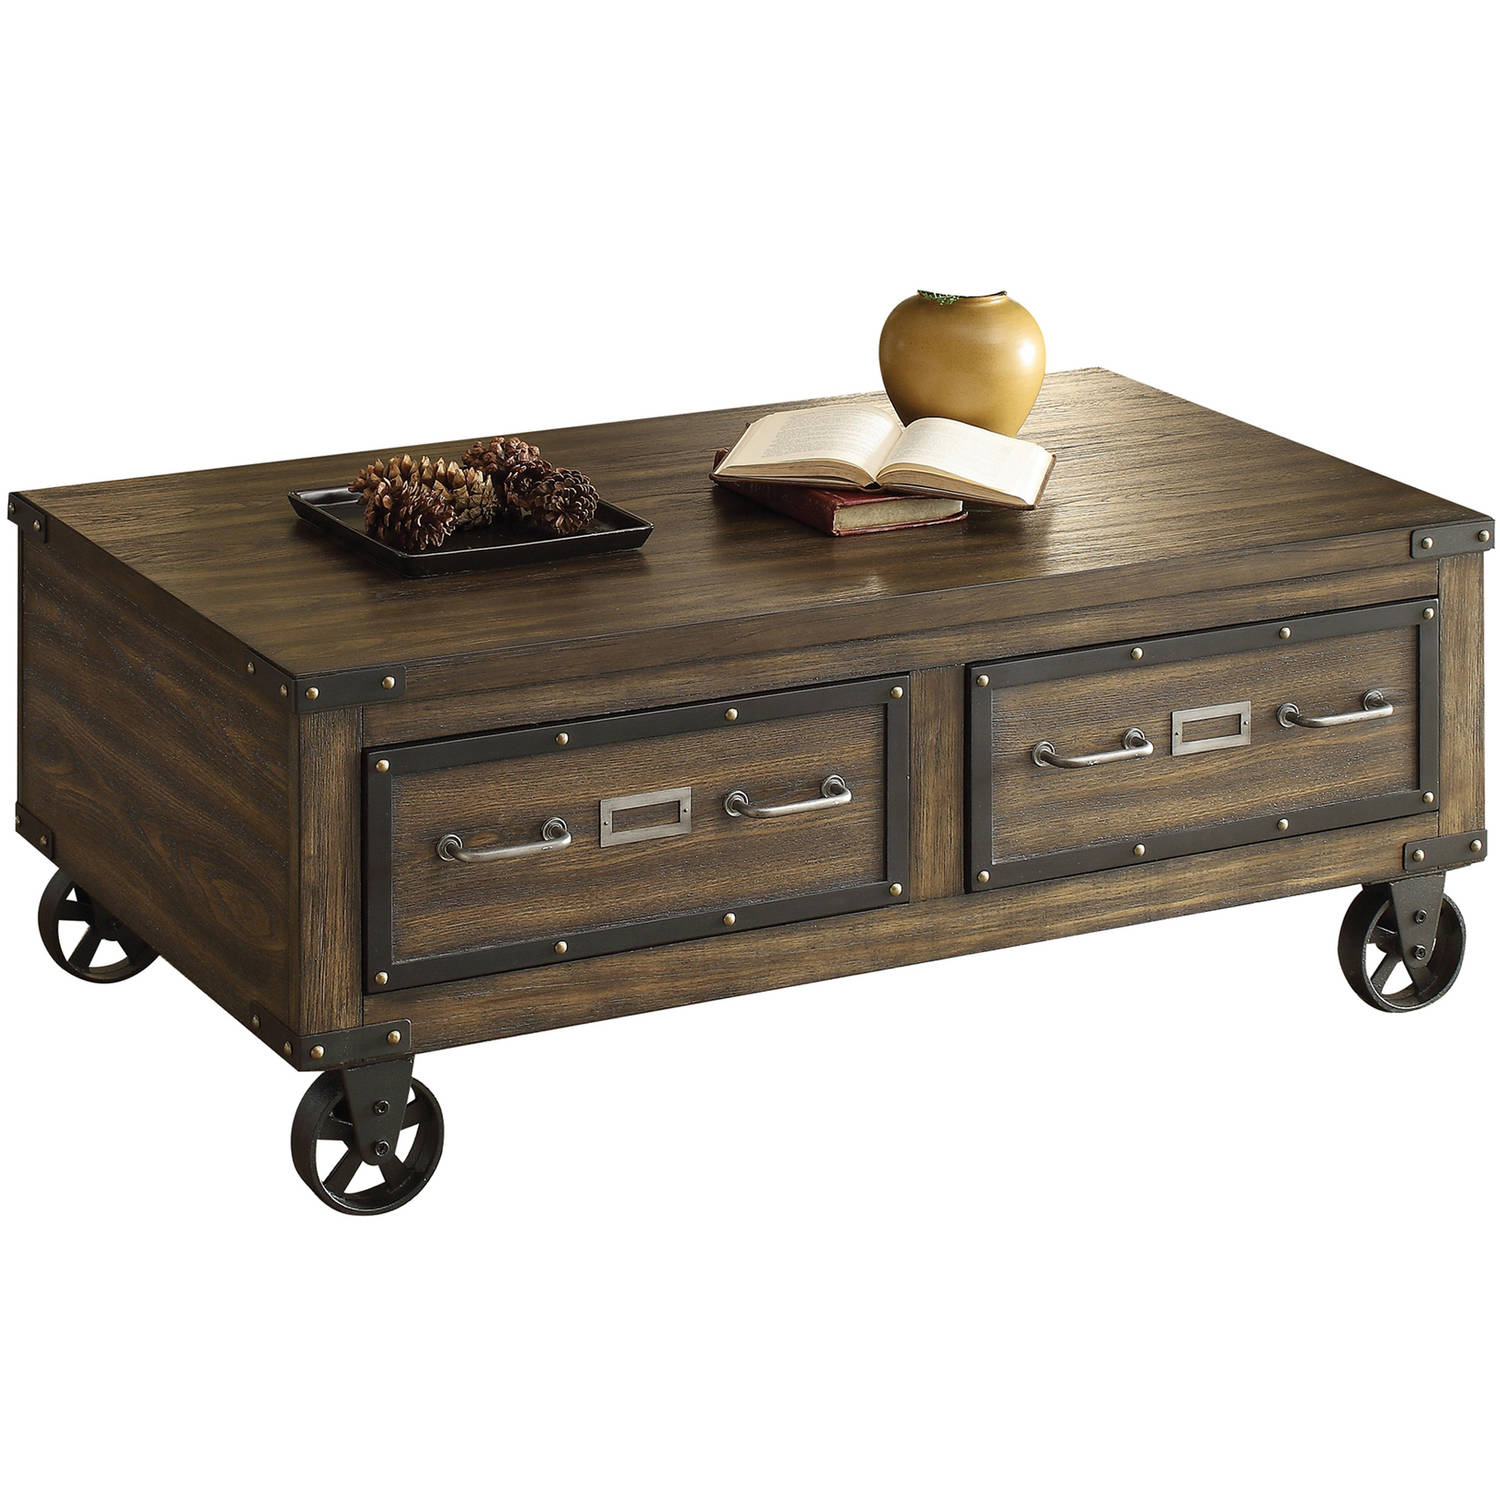 ACME Kailas Coffee Table with 2 Drawers, Weathered Dark Oak